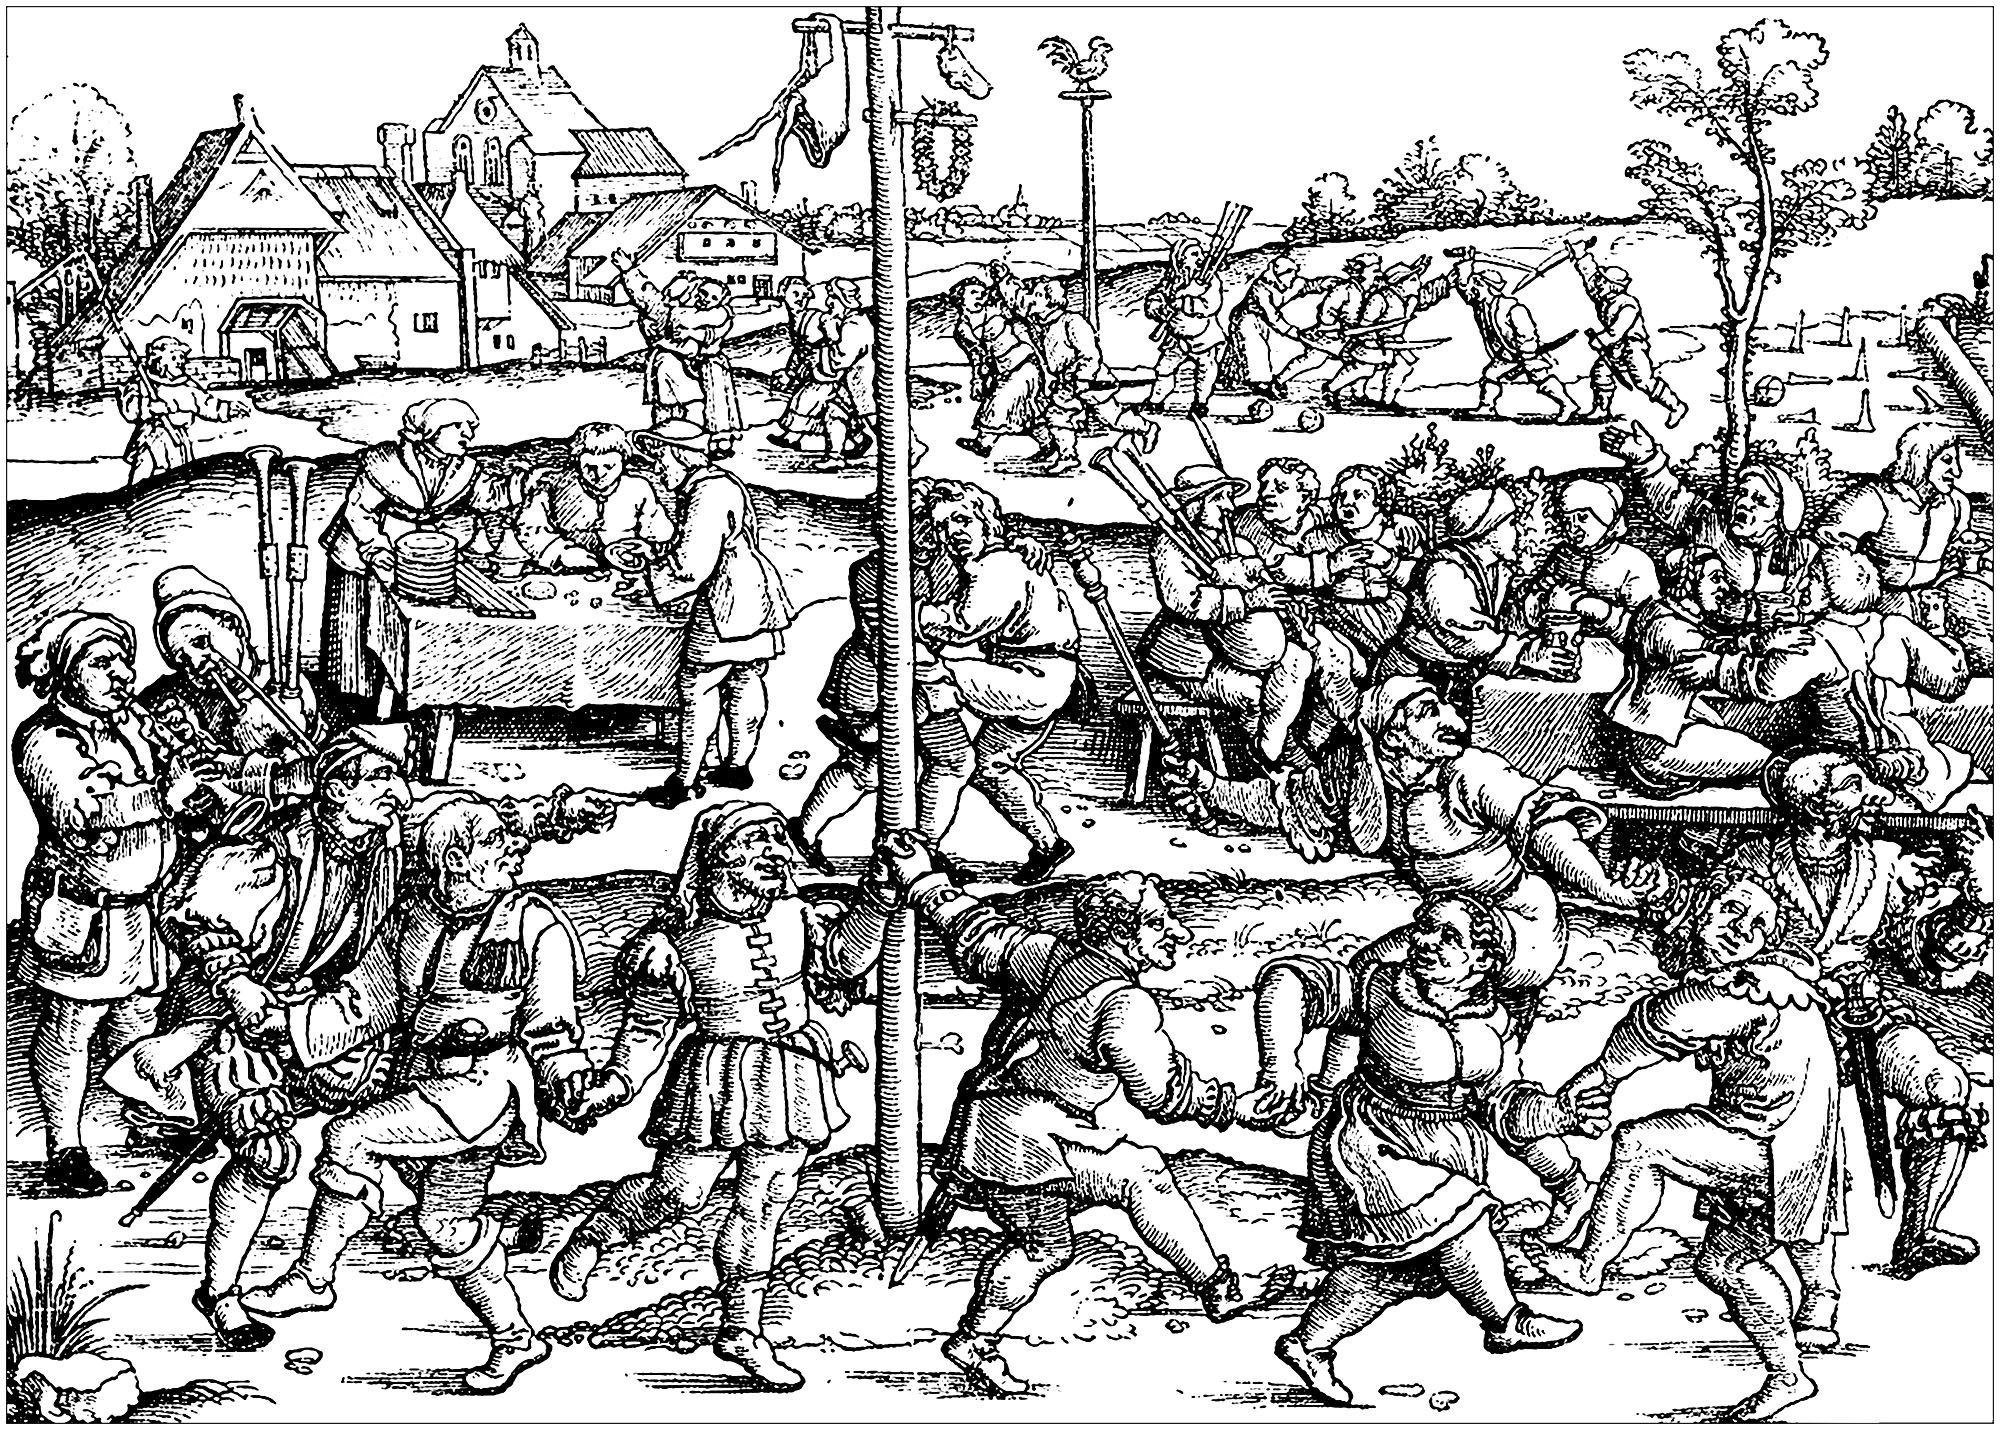 Middle ages peasants celebrating (from a vintage illustration)